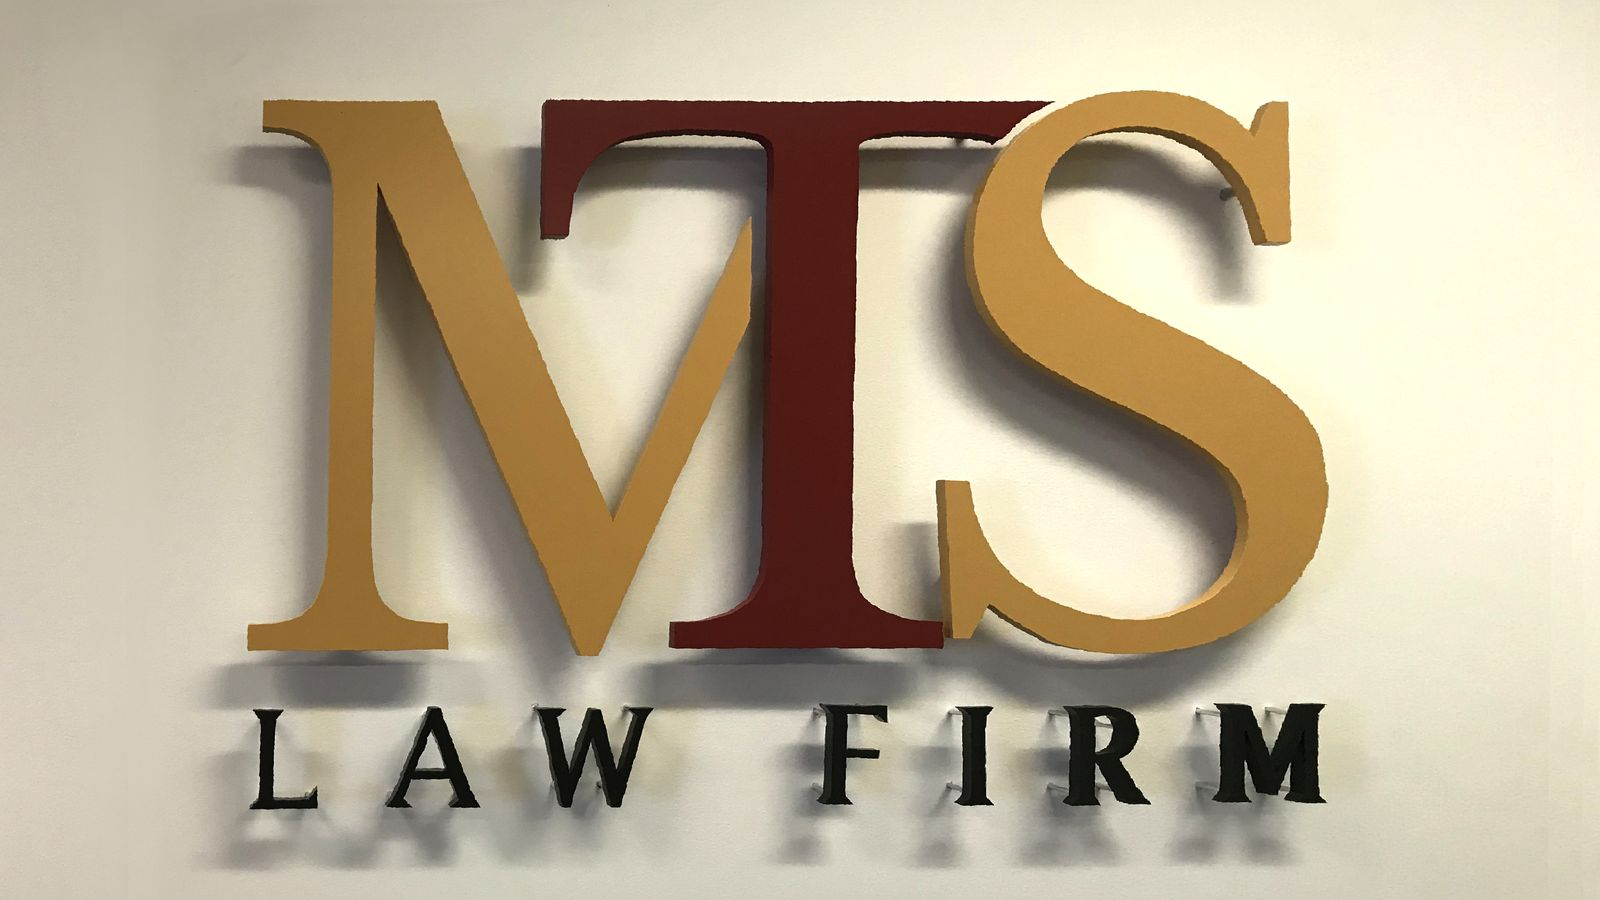 MTS Law Firm 3d office sign displaying the company logo and name made of painted aluminum